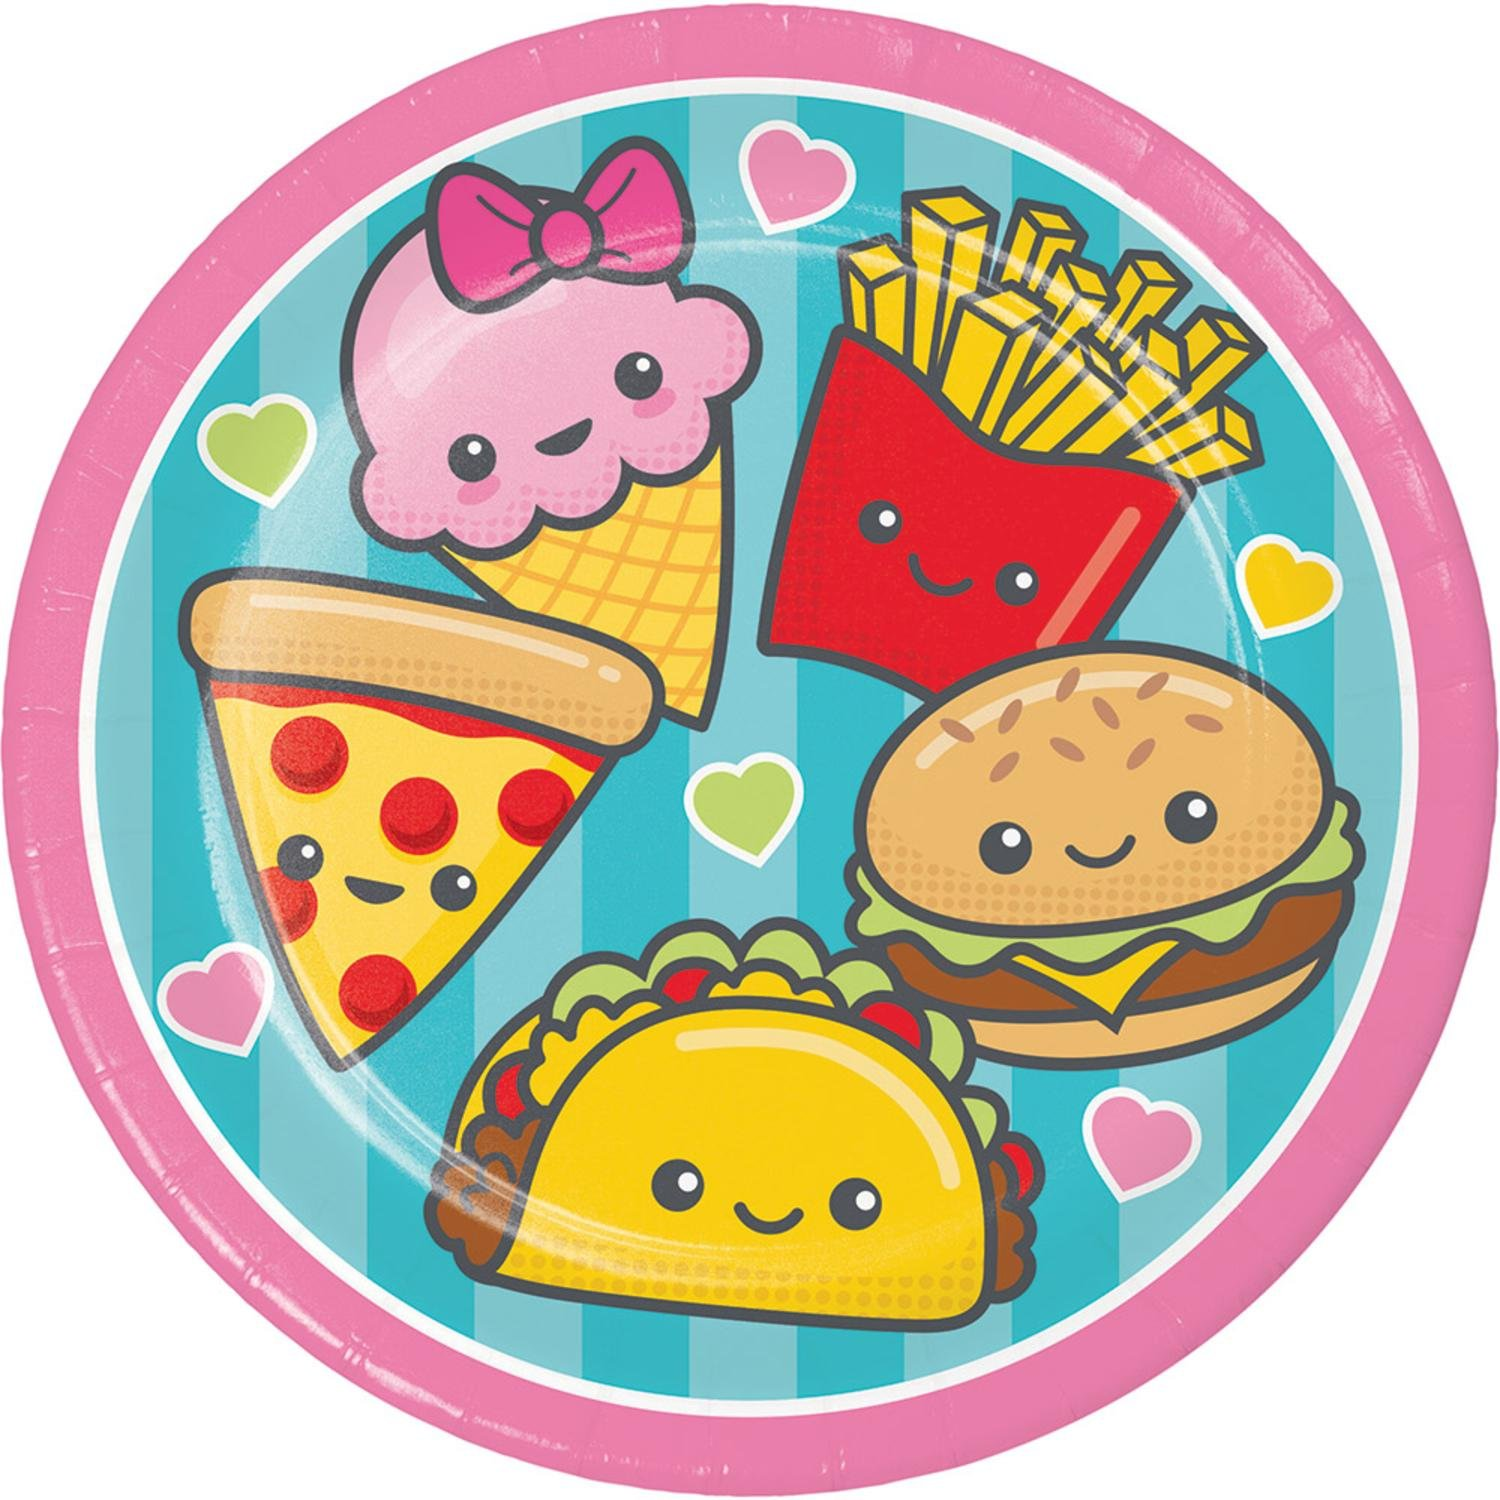 Luncheon clipart bring a plate. Amazon com club pack